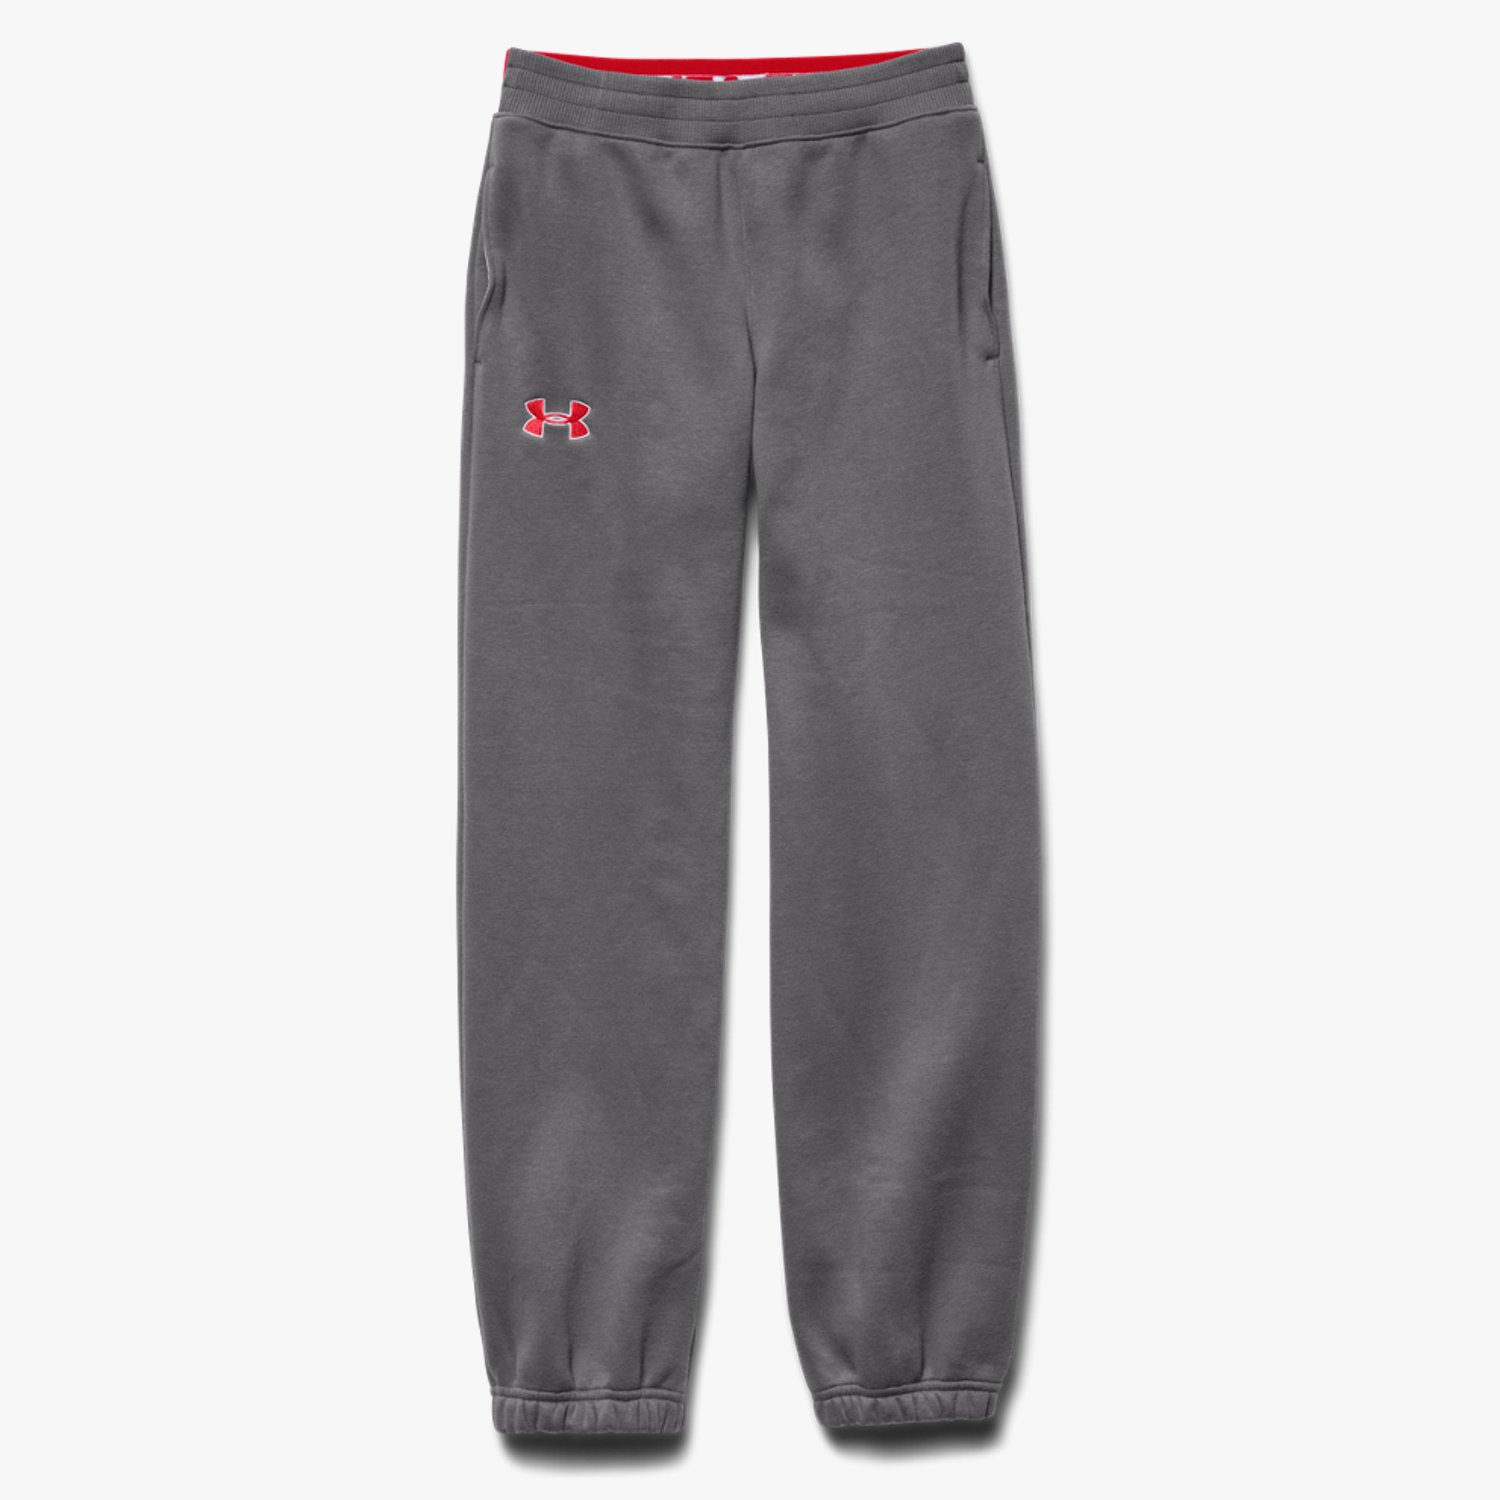 Under Armour Boys' UA Storm Charged Cotton Transit Trousers Graphite/Risk Red-30